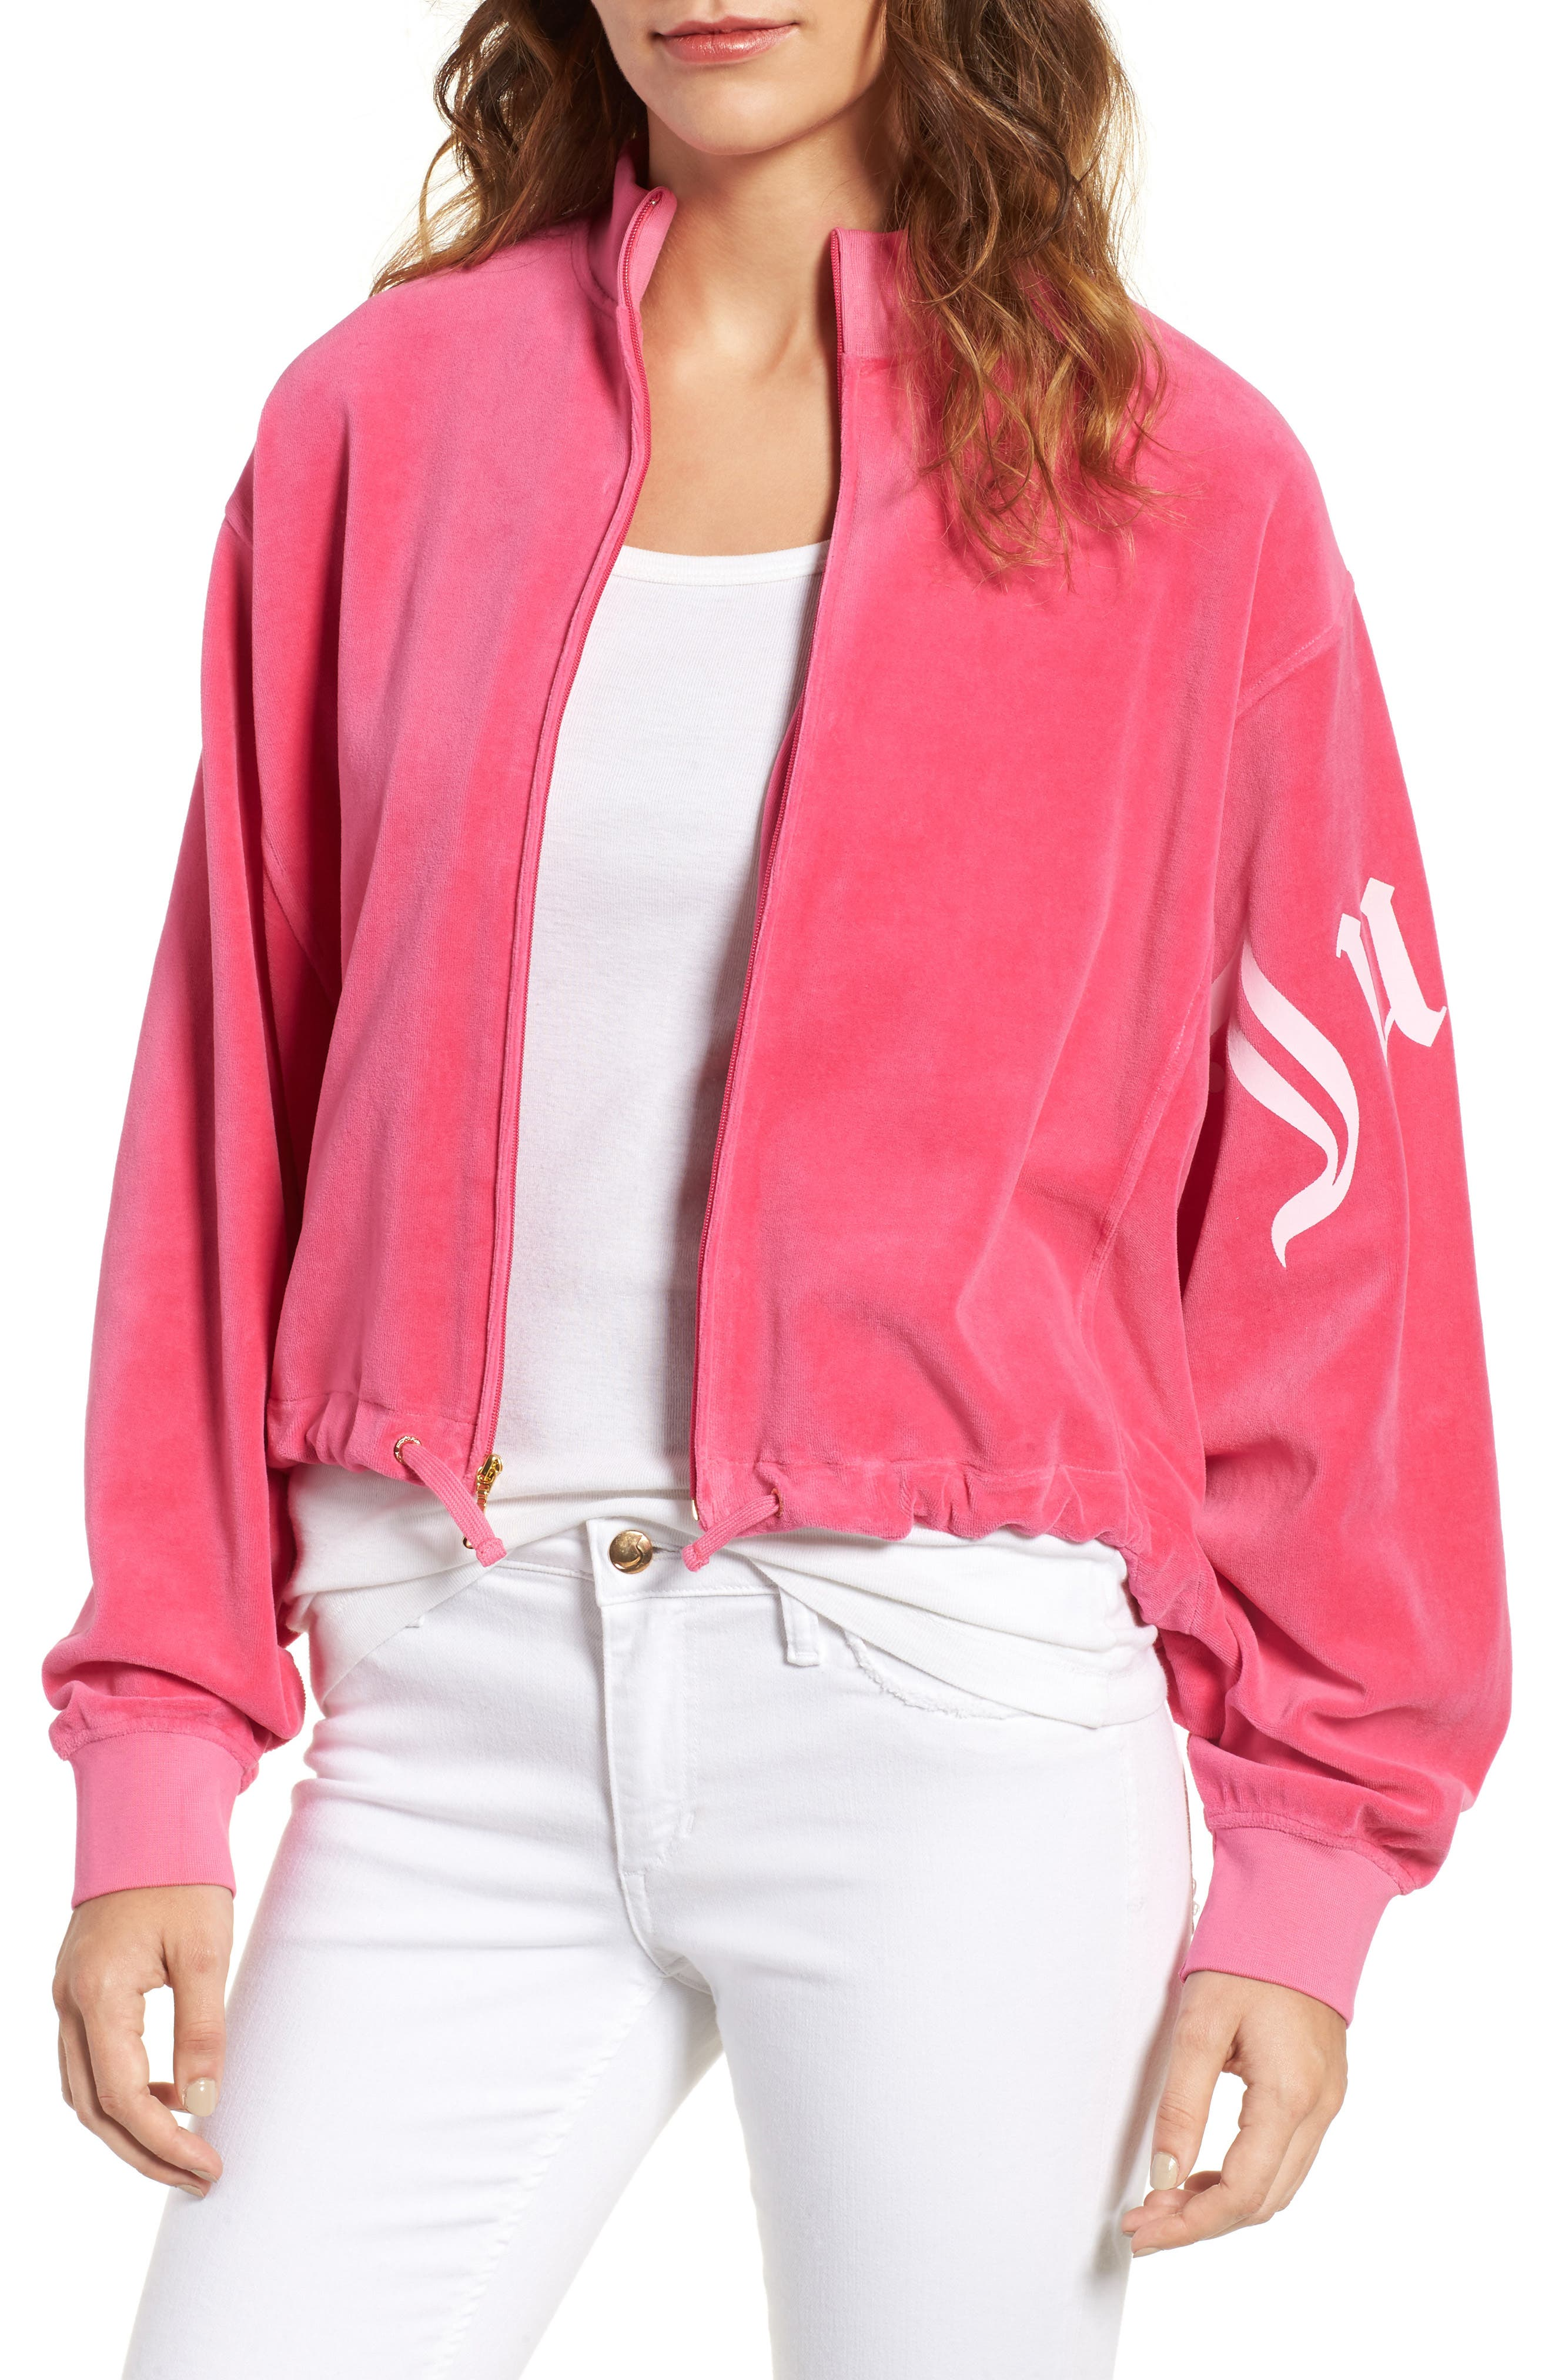 Juicy Couture Velour Batwing Track Jacket